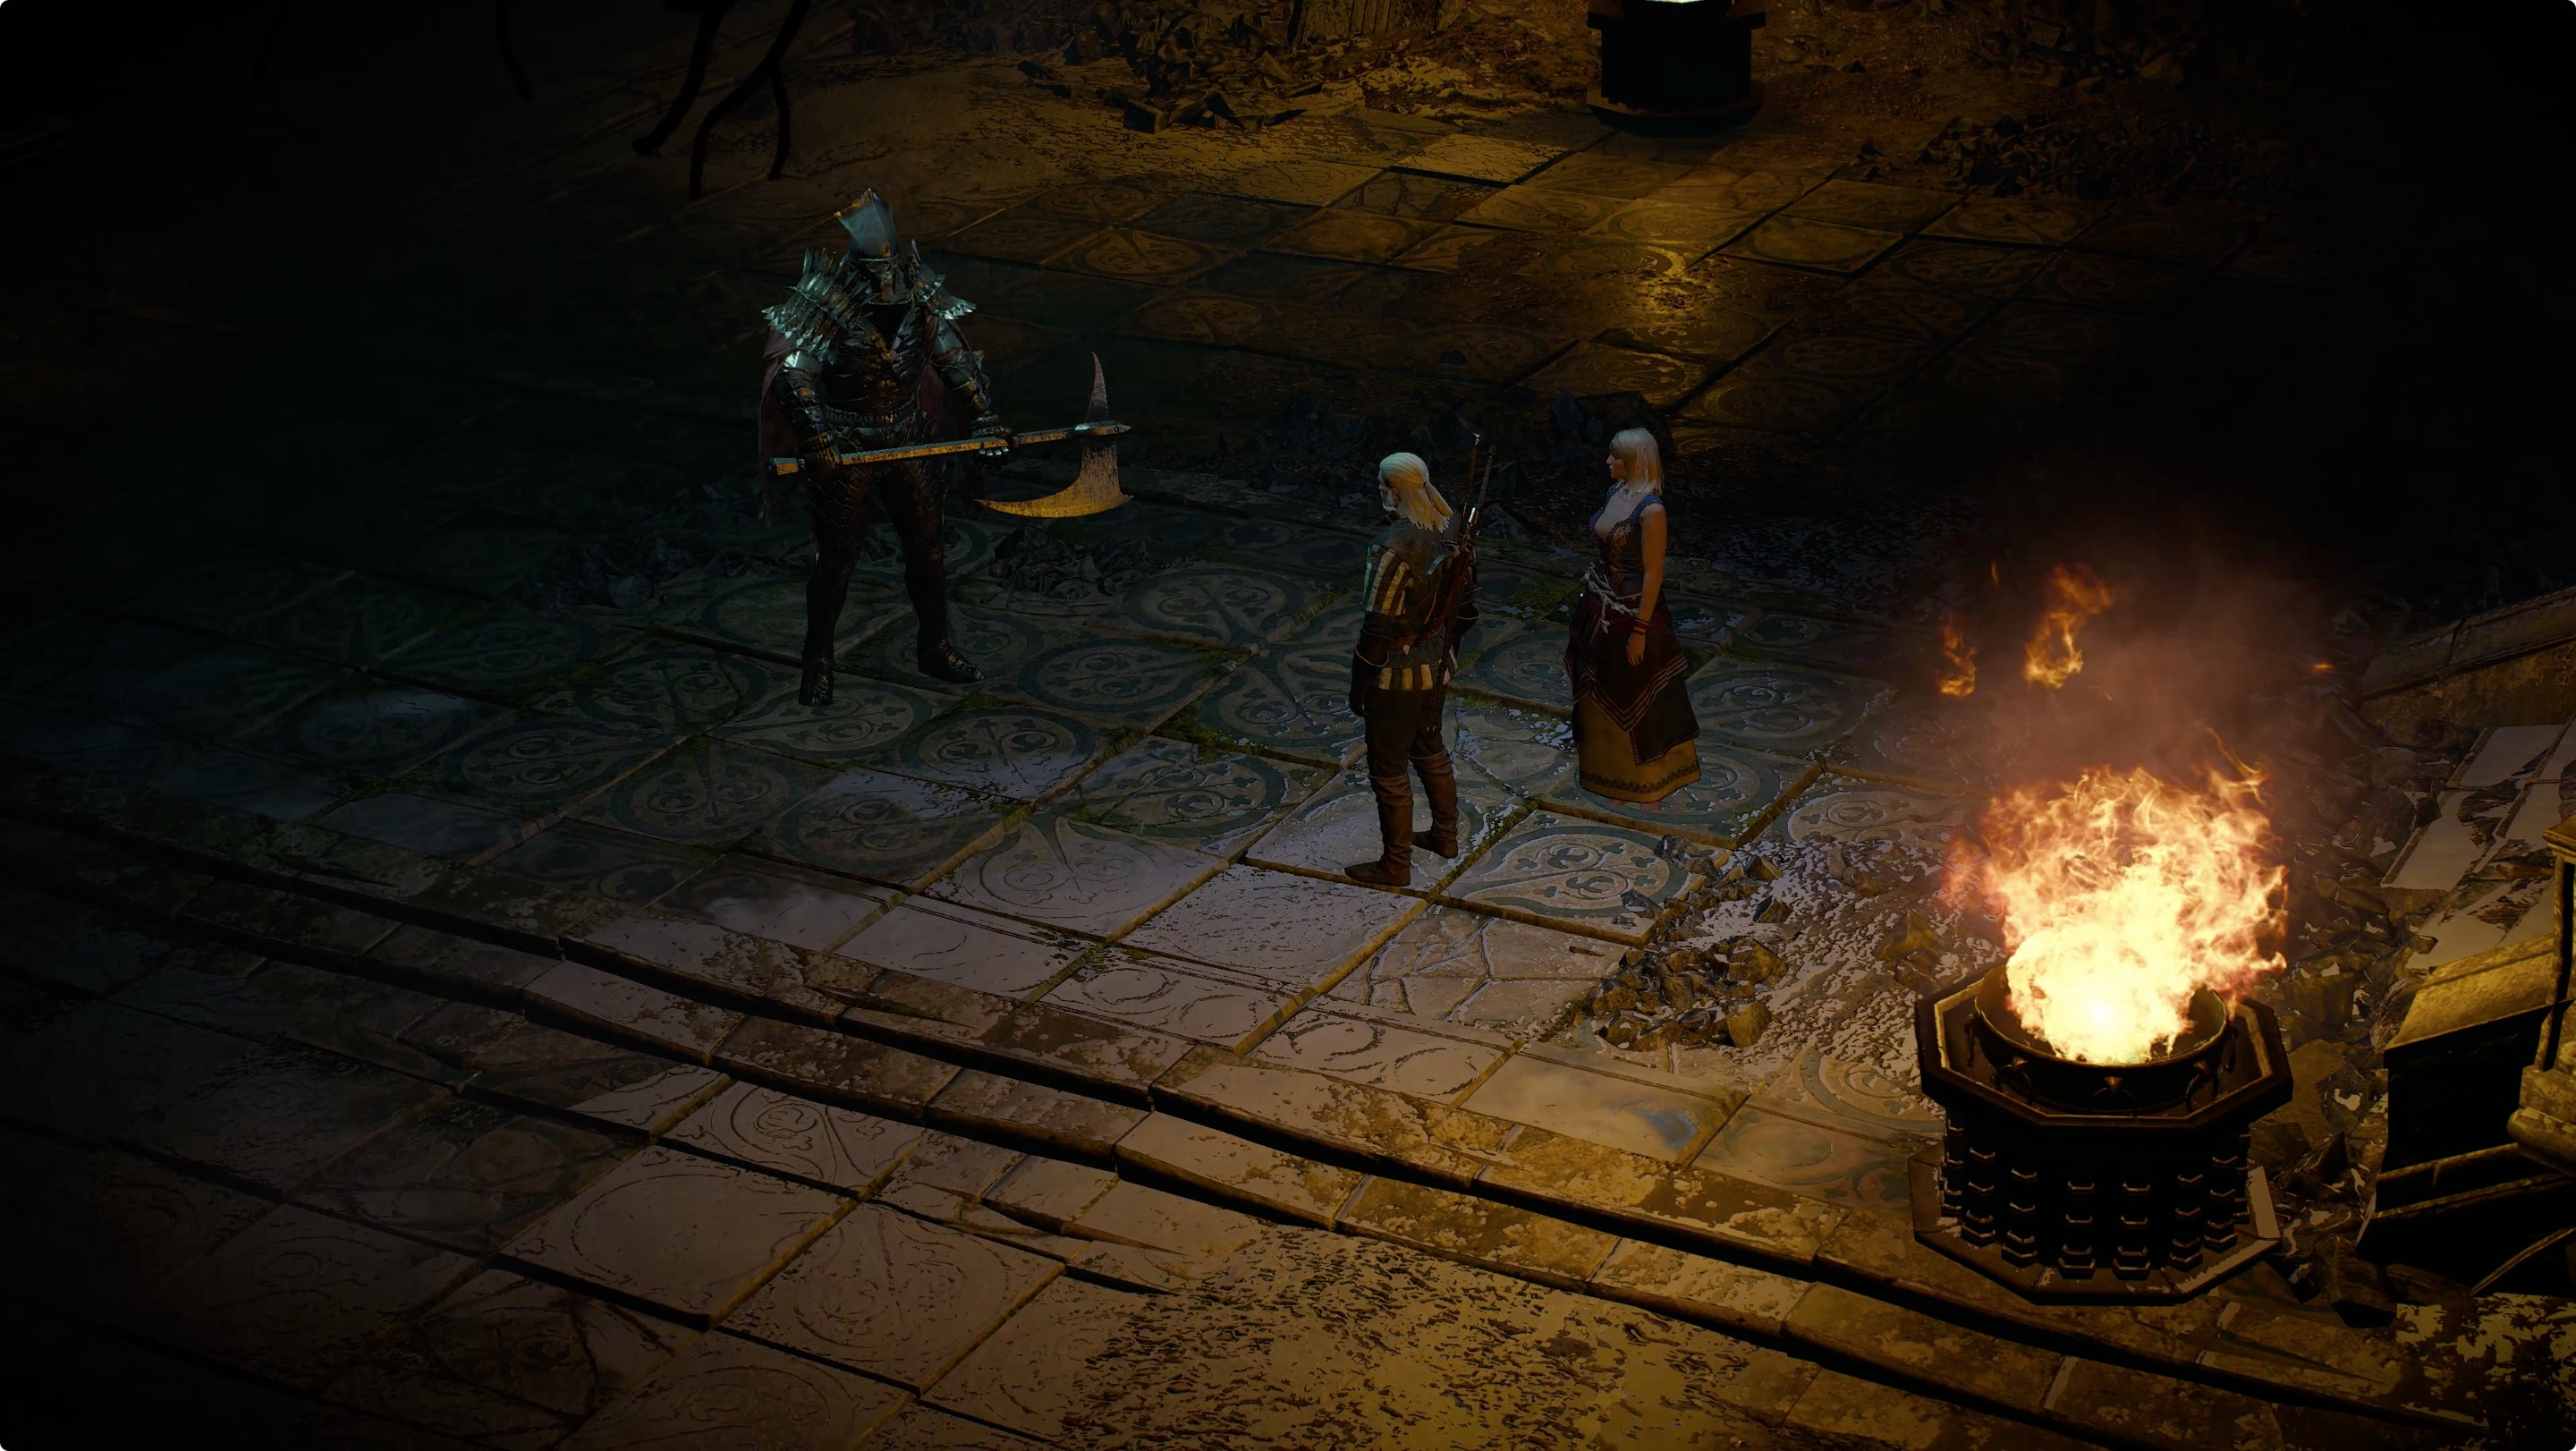 Witcher 3 Wandering in the Dark walkthough and guide